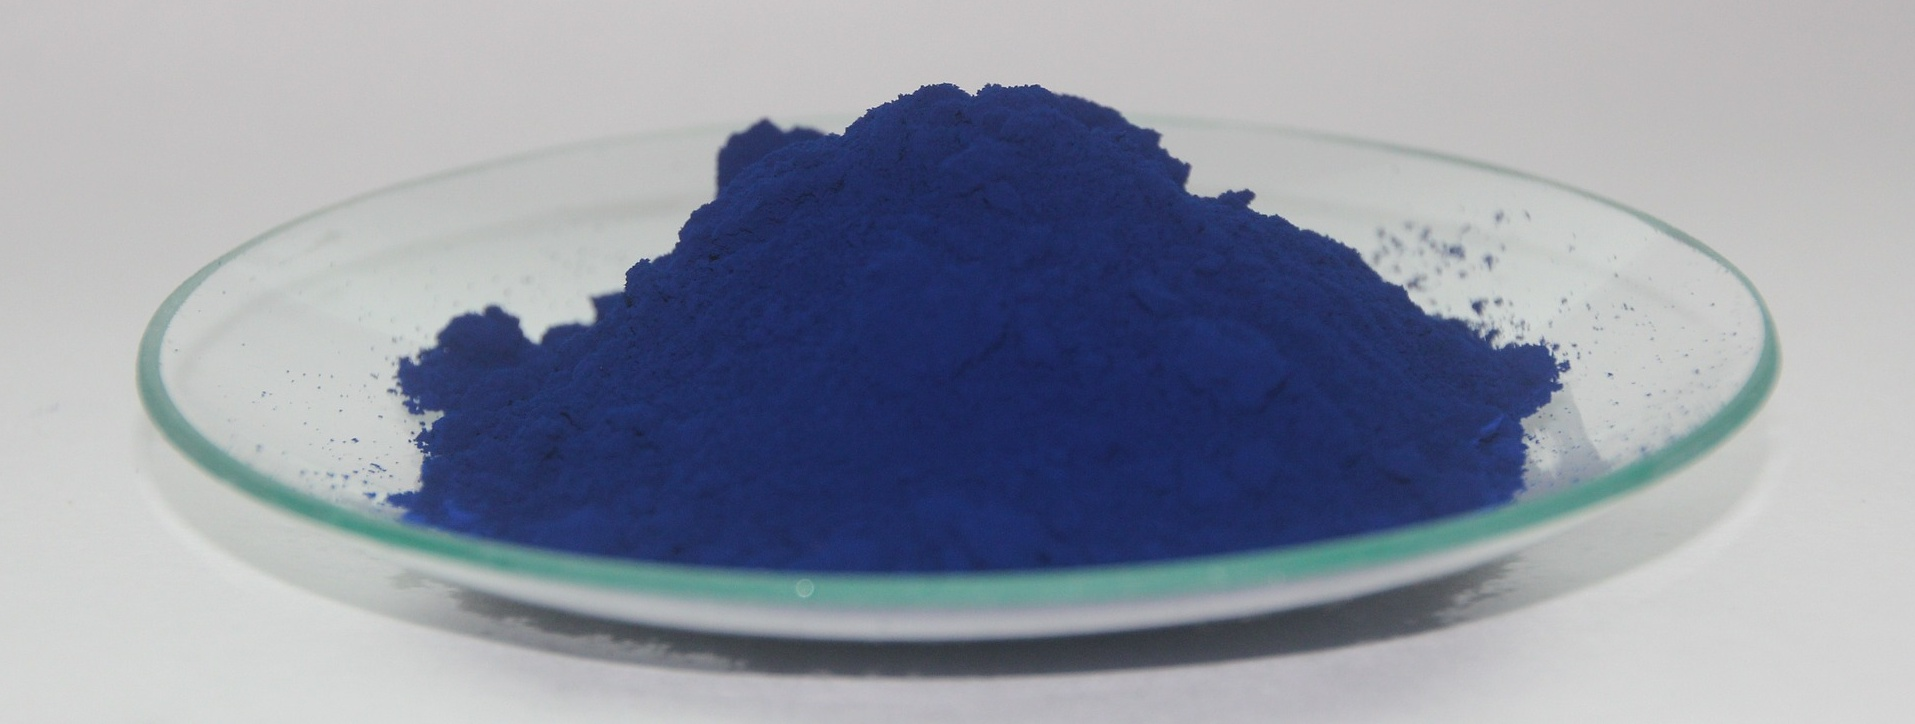 how to make blue food dye